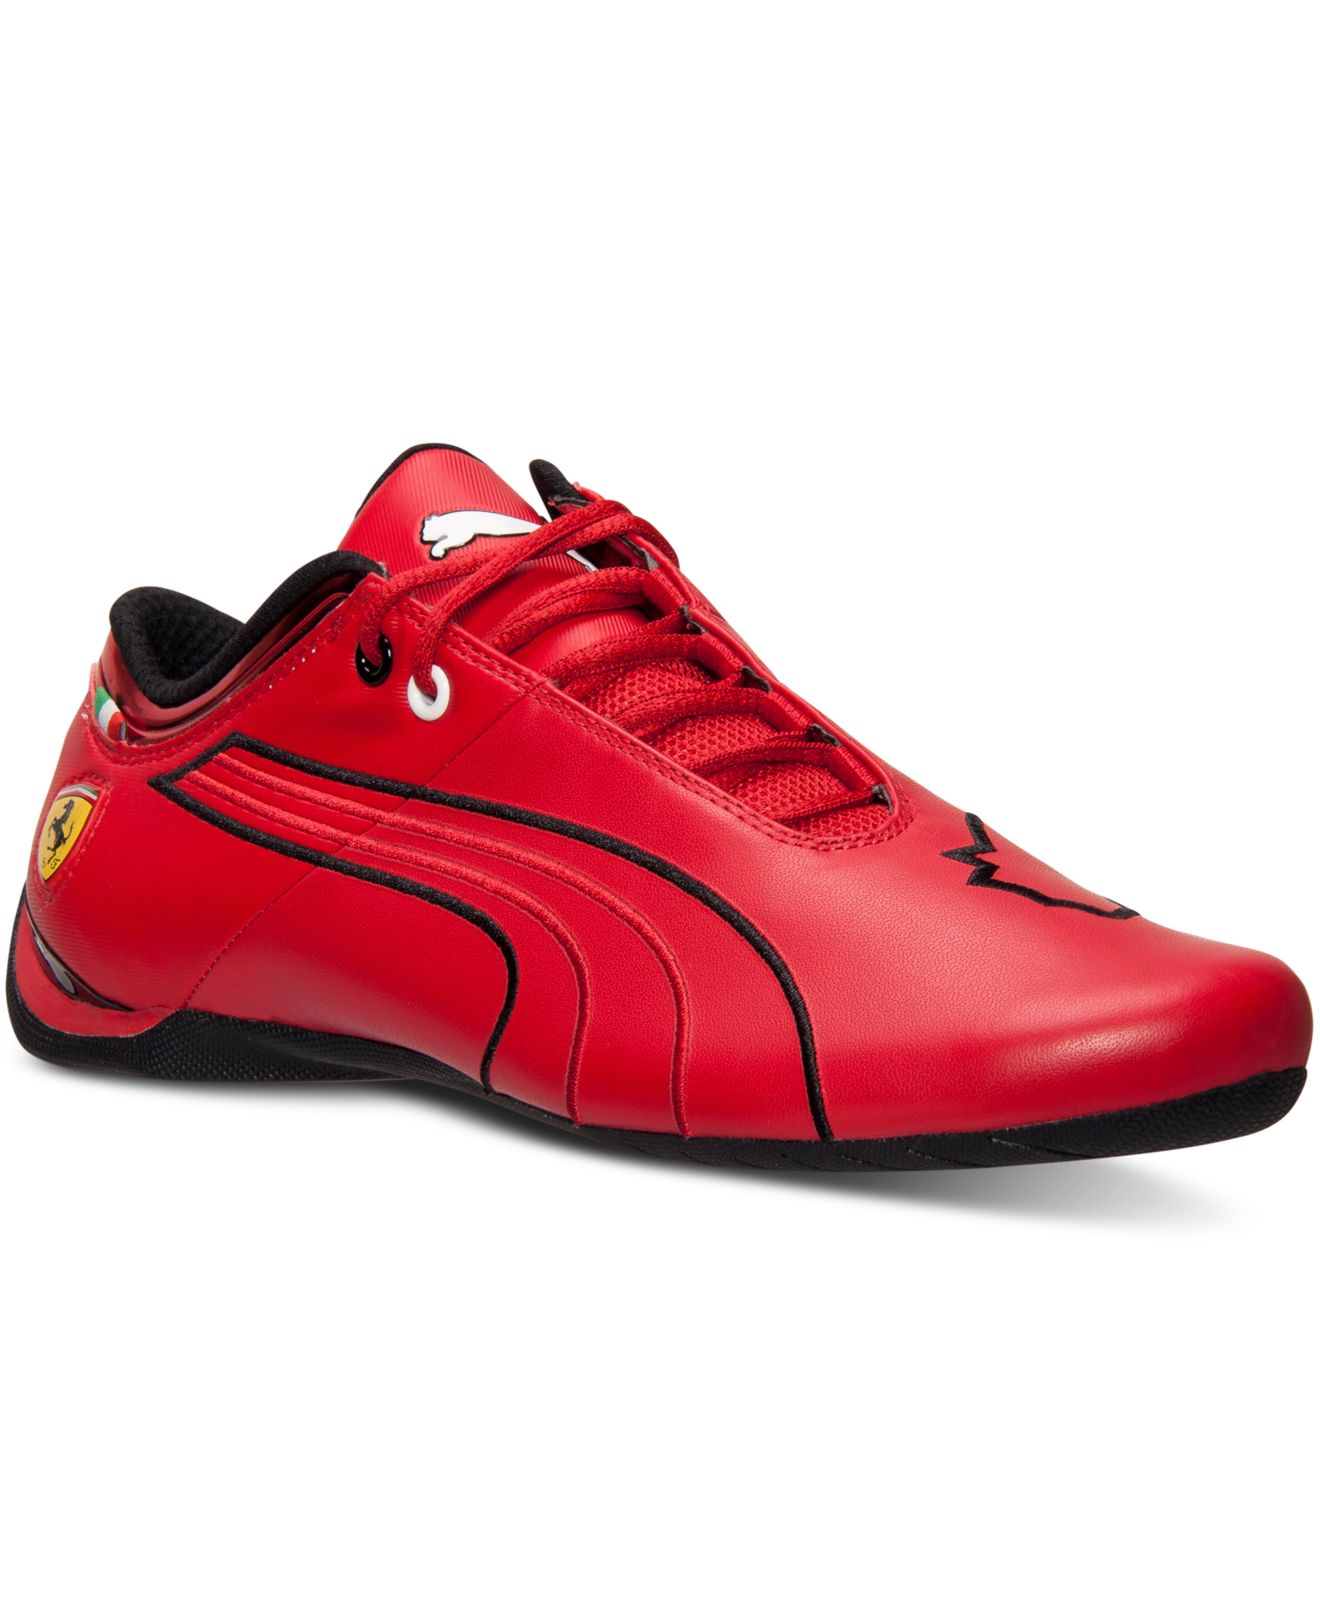 Red Driving Shoes Men